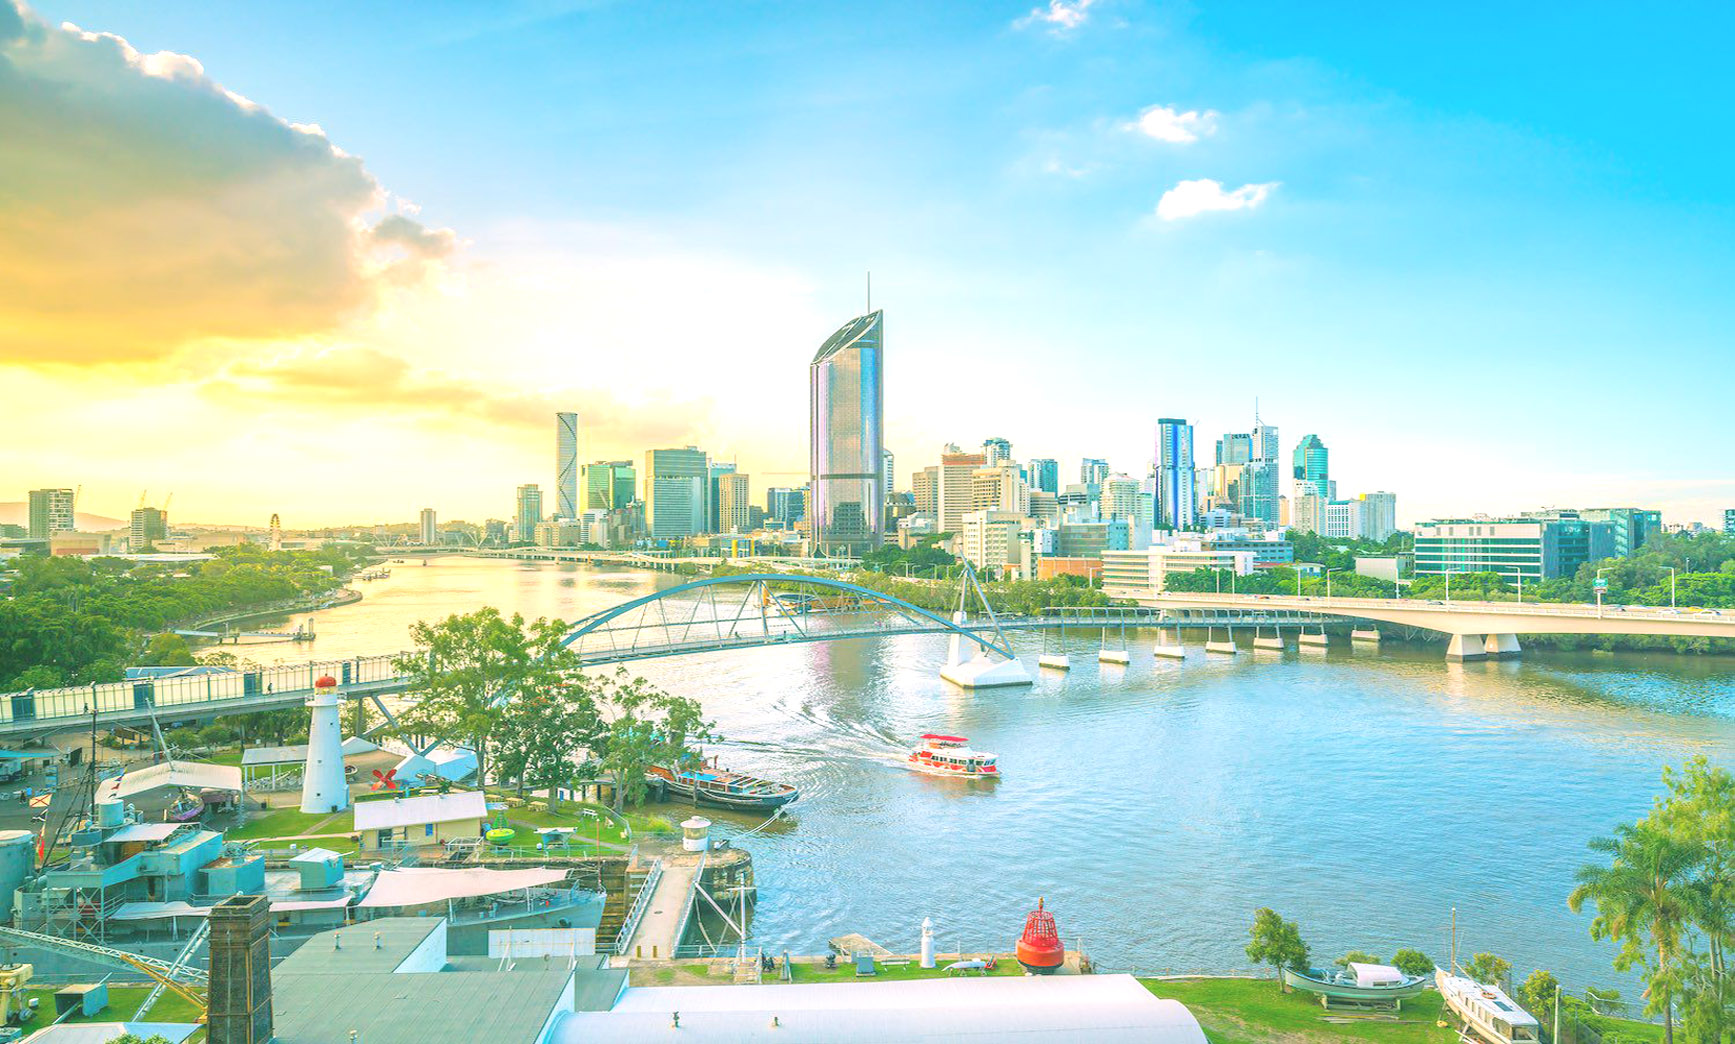 Brisbane Tours, Hotels, Restaurants, Weather, Map, Culture & Things to Do - Travel Guide in Australia